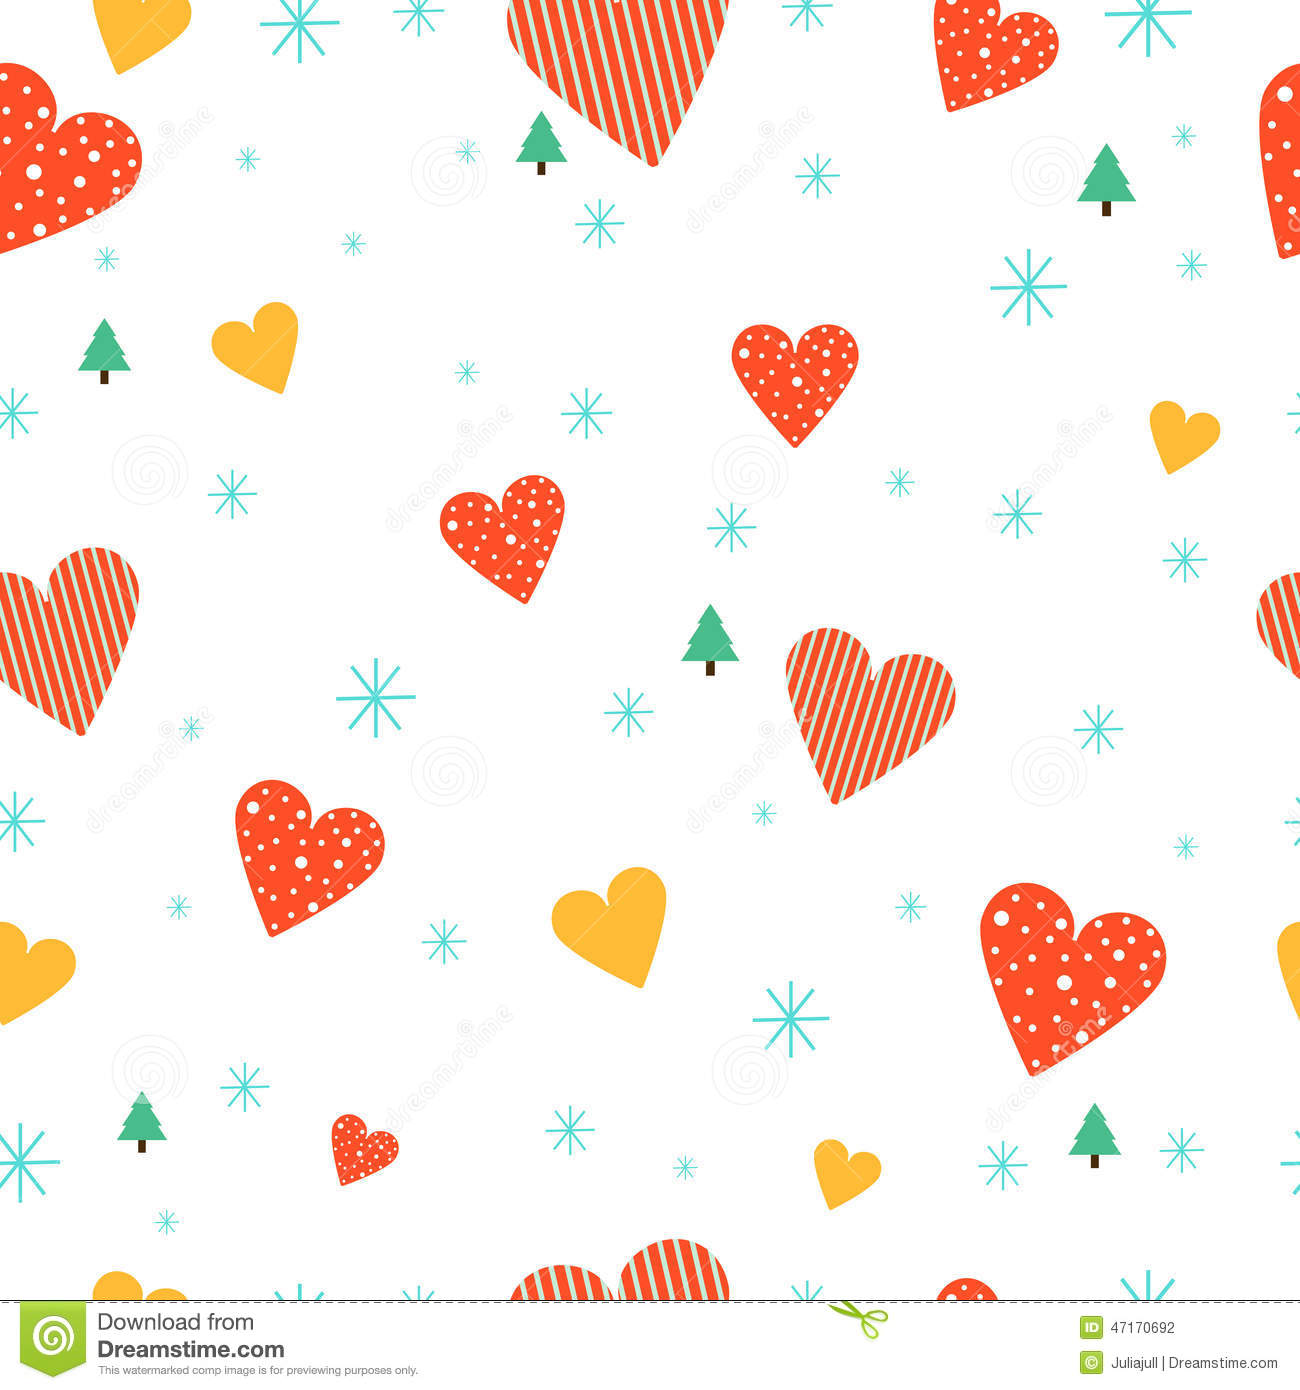 holiday hearts wallpaper vector - photo #5